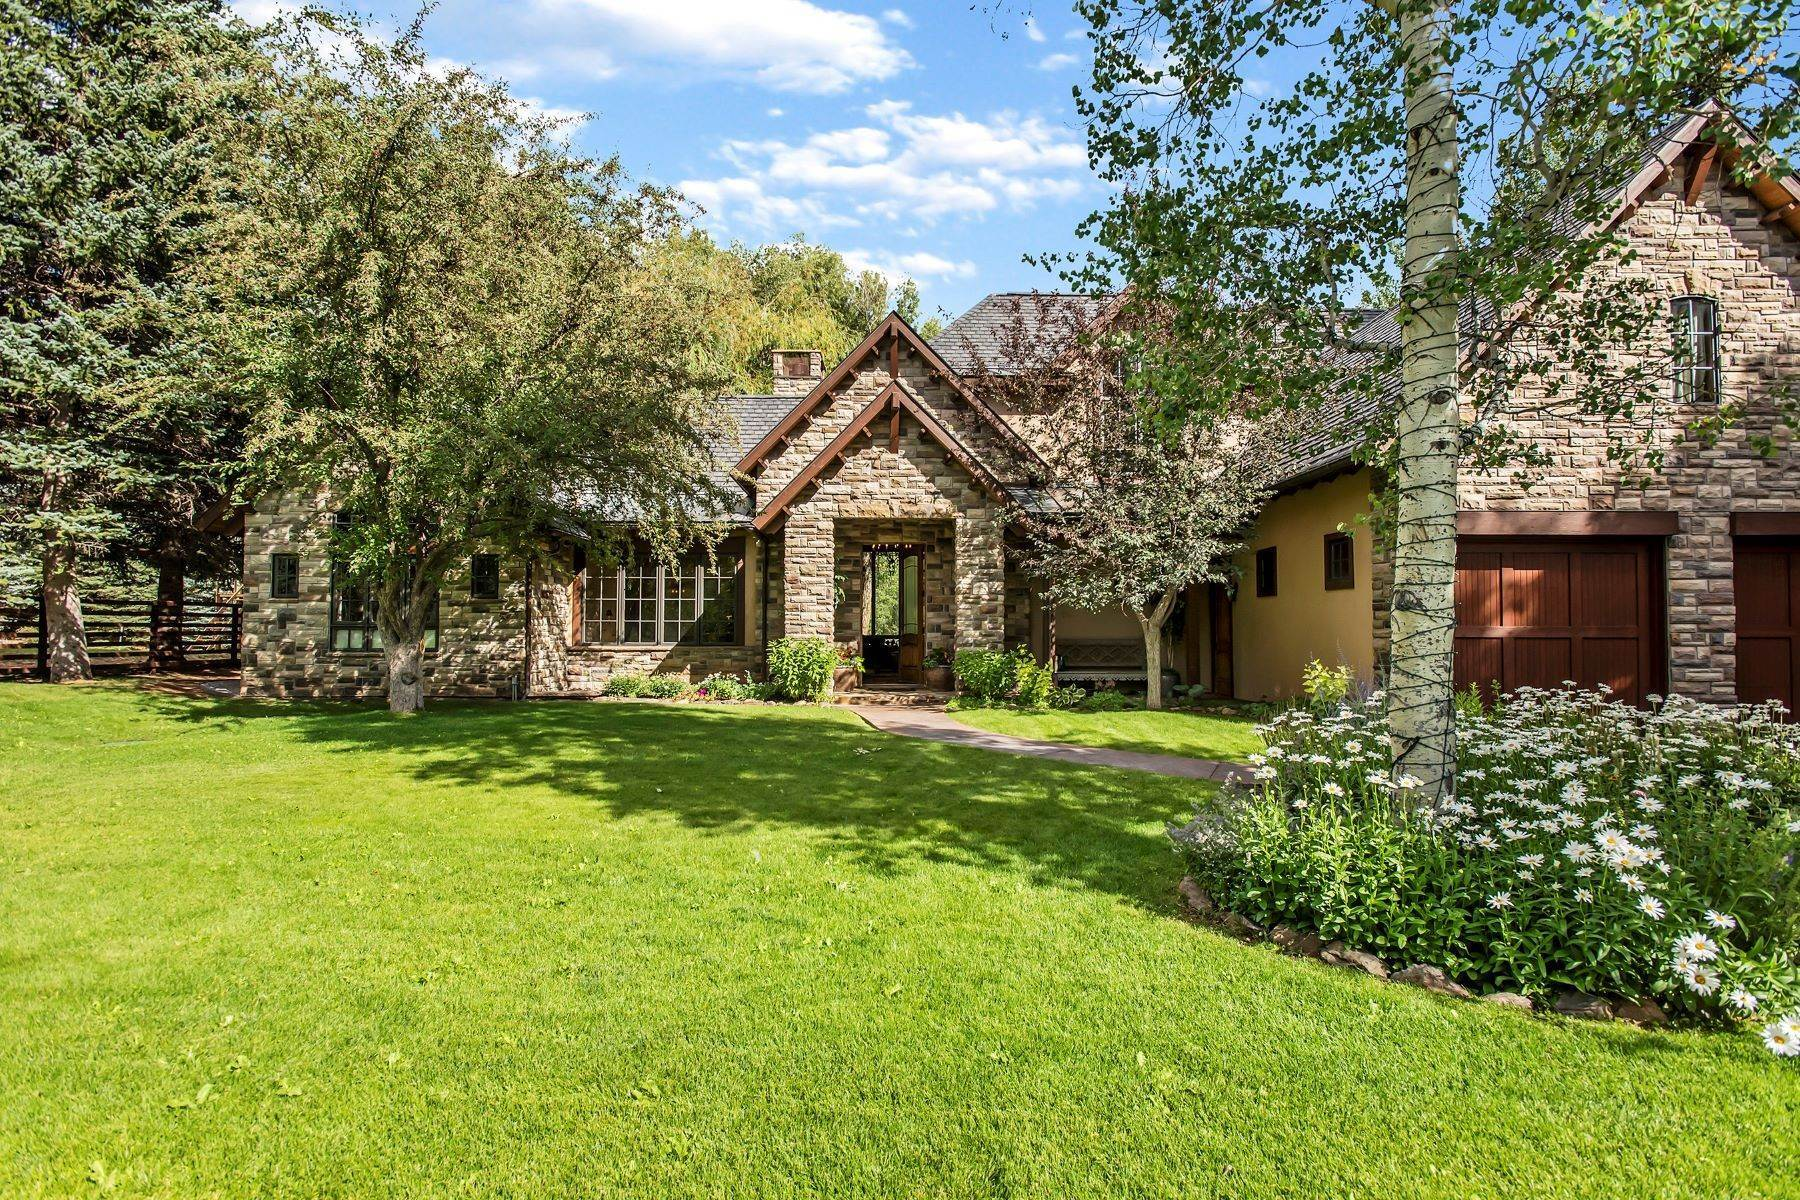 Single Family Homes for Sale at Samuelson Subdivision Lot 11 70 River Bend Road Snowmass, Colorado 81654 United States